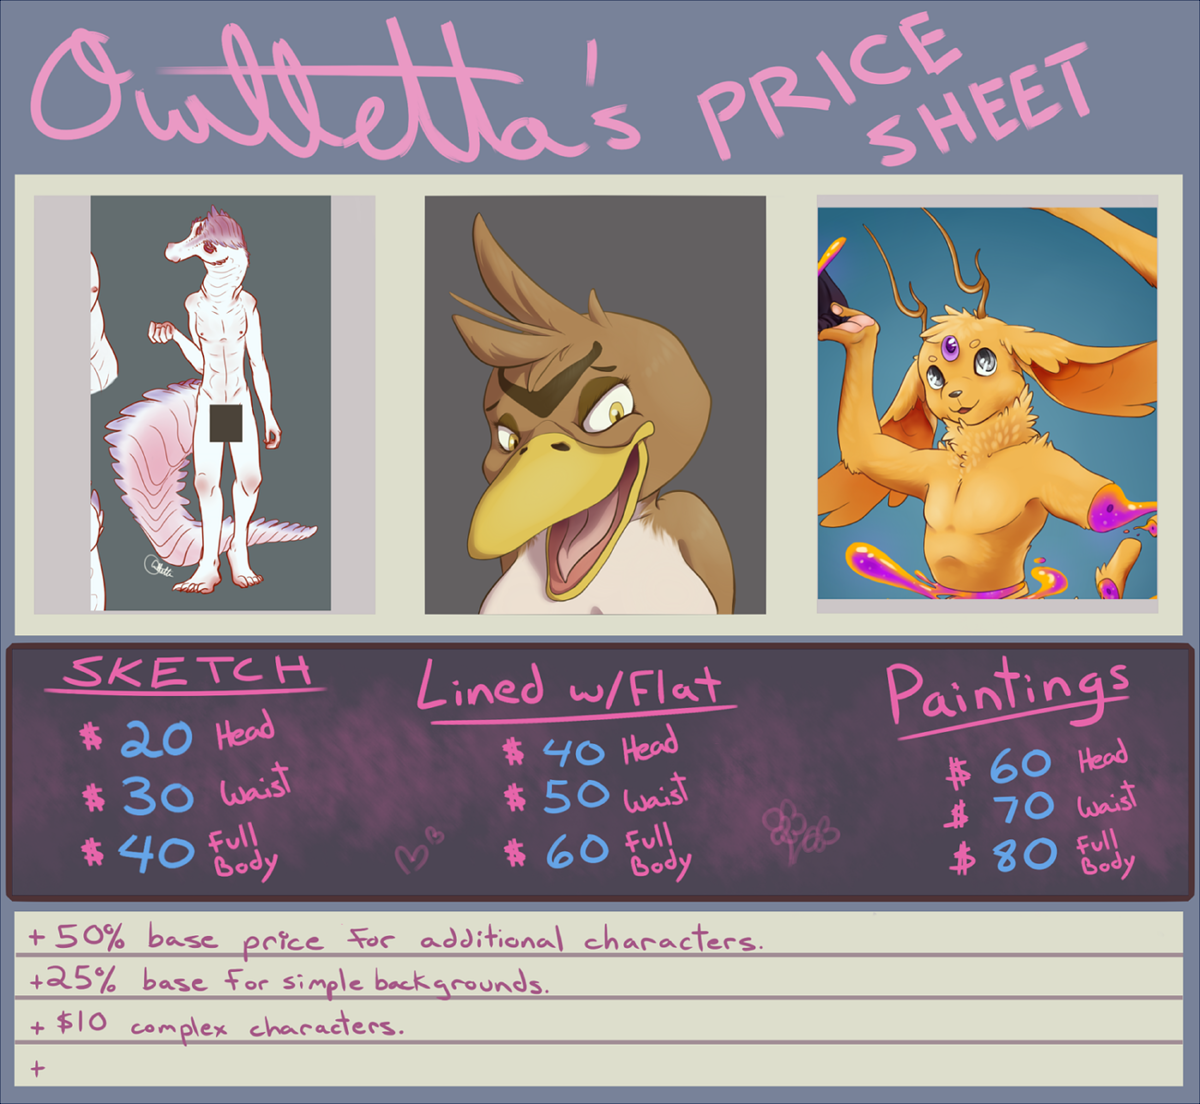 Commission hiring 2 jobs 1 character reference sheet and i would like to help you with this here is my price sheet and my tos for nsfw stuff commission info for owlletta fur affinity dot net negle Images